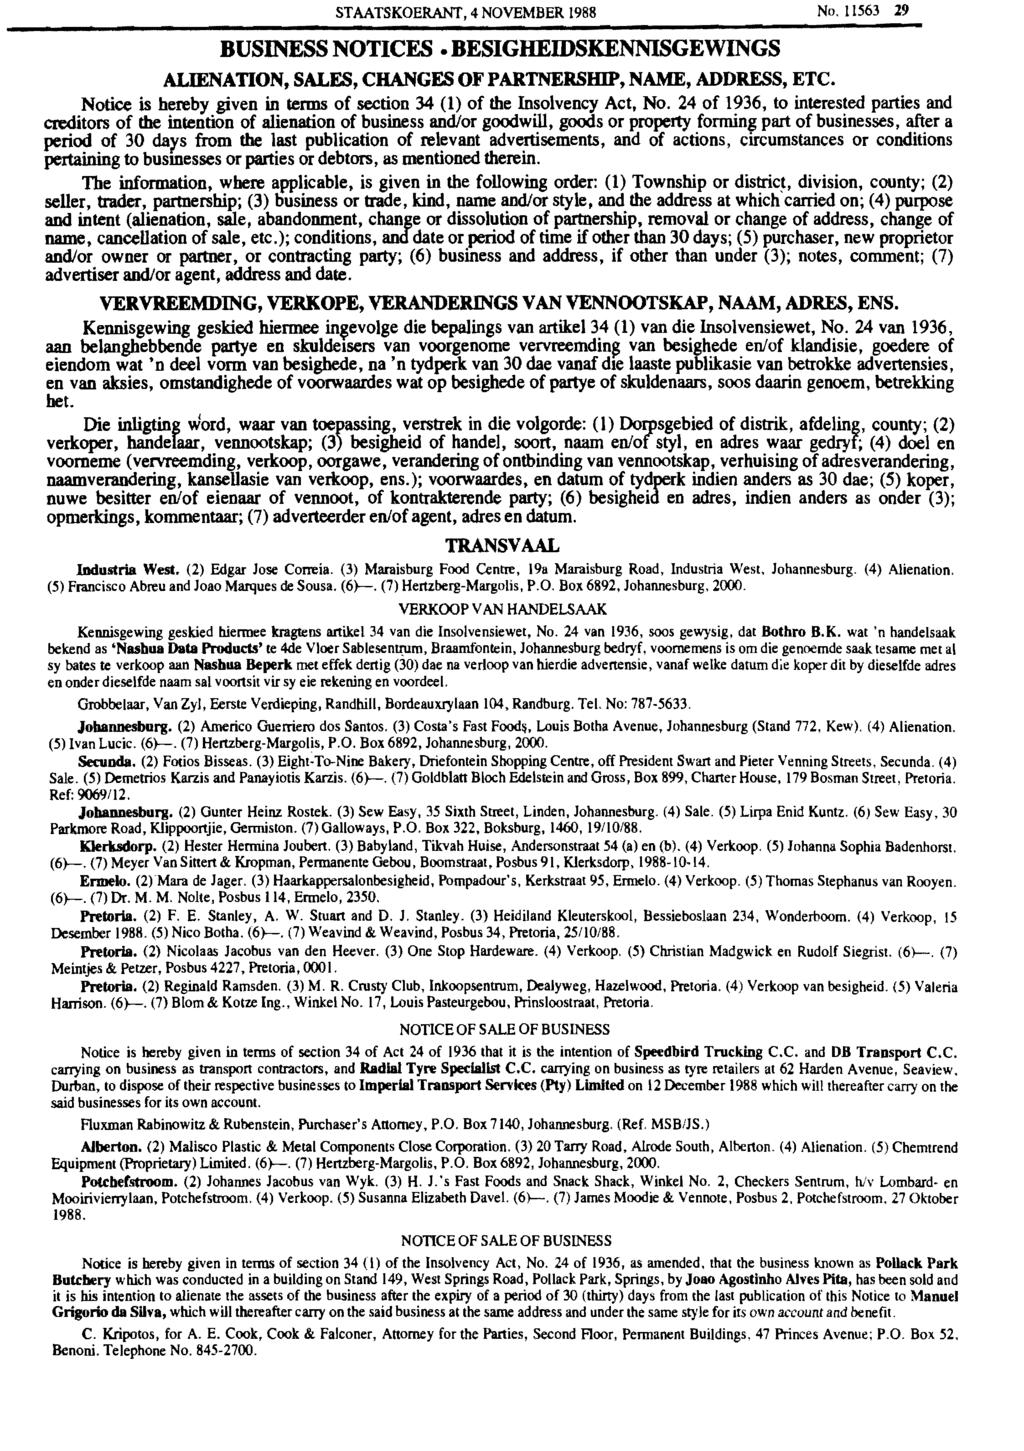 STAATSKOERANT, 4 NOVEMBER 1988 NO.11563 29 BUSINESS NOTICES. BESIGHEIDSKENNISGEWINGS ALIENATION, SALES, CHANGES OF PARTNERSHIP, NAME, ADDRESS, ETC.